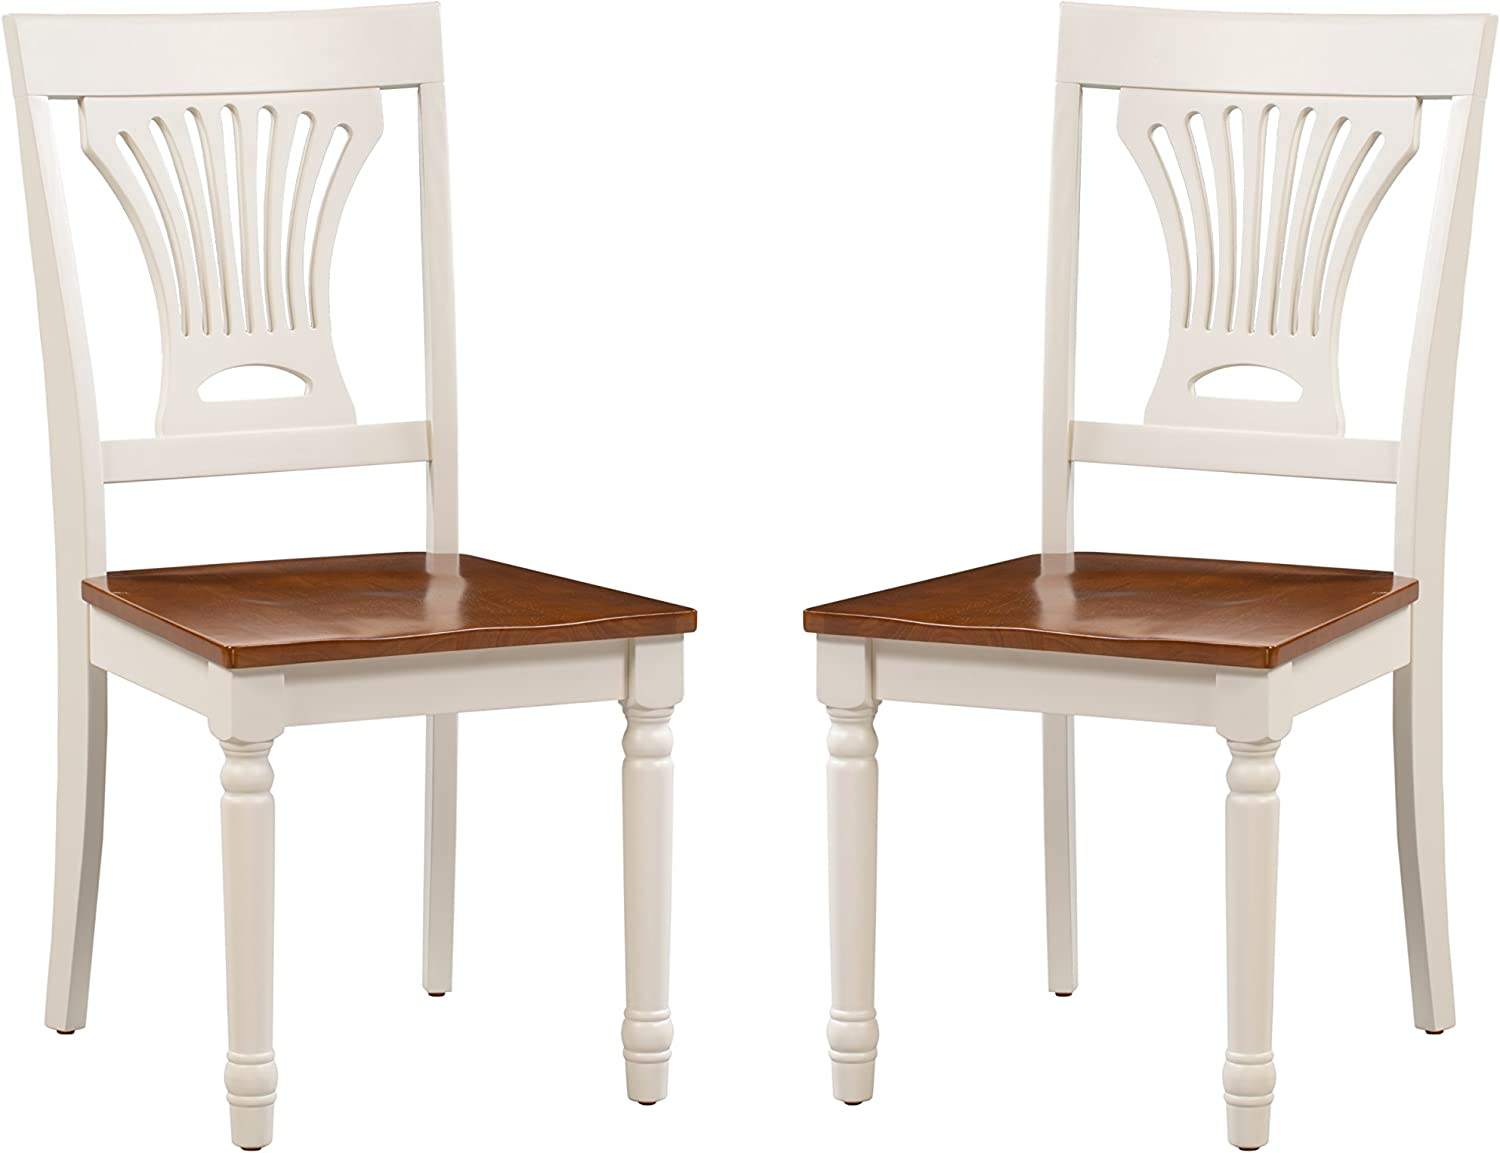 Trithi Furniture – Portland Solid Wood White and Cherry Seat Chairs, Set of 2